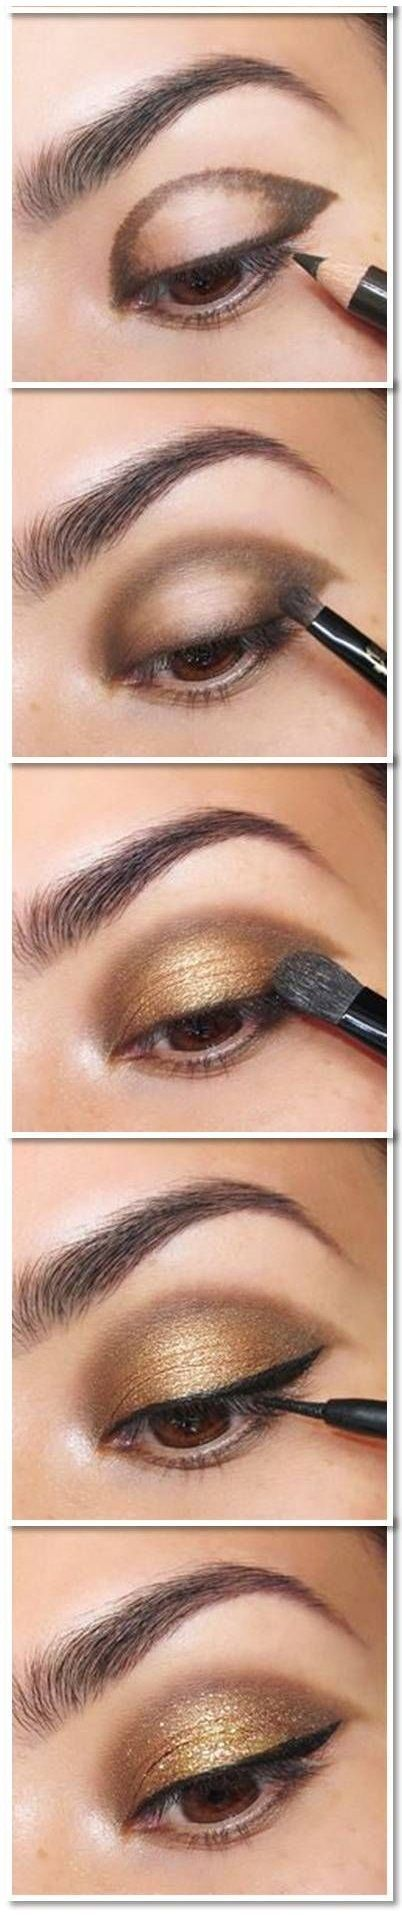 Gold Smoky Eye Makeup Tutorial - #eyes #eyeshadow #gold #smoky #smokey #tutorial #howto #makeup #beauty #cosmetics - www.pampadour.com